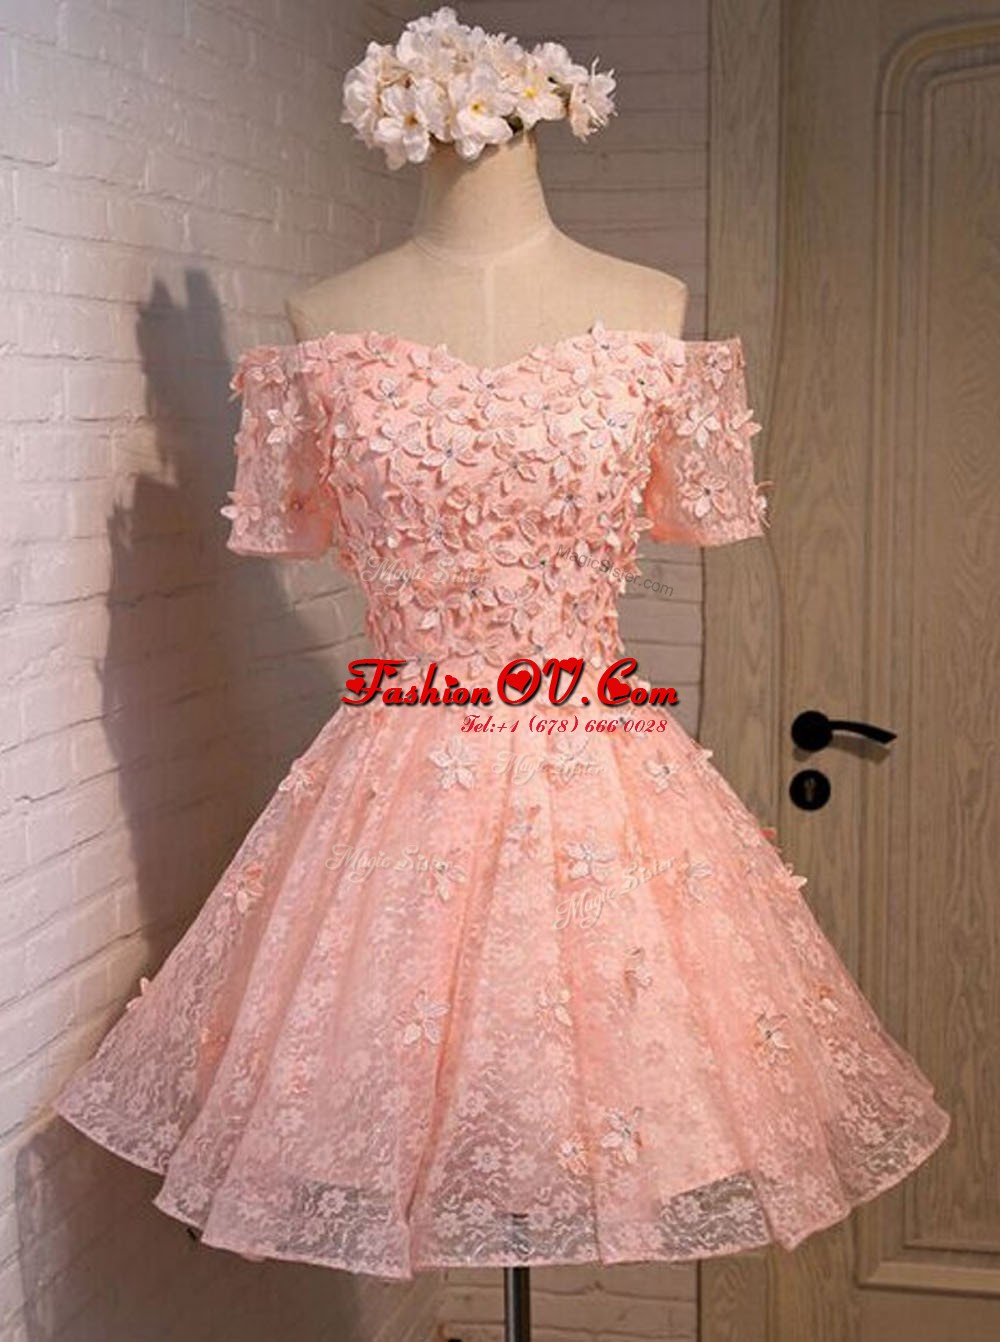 Traditional Peach Homecoming Dress Prom and For with Appliques Off The Shoulder Sleeveless Lace Up